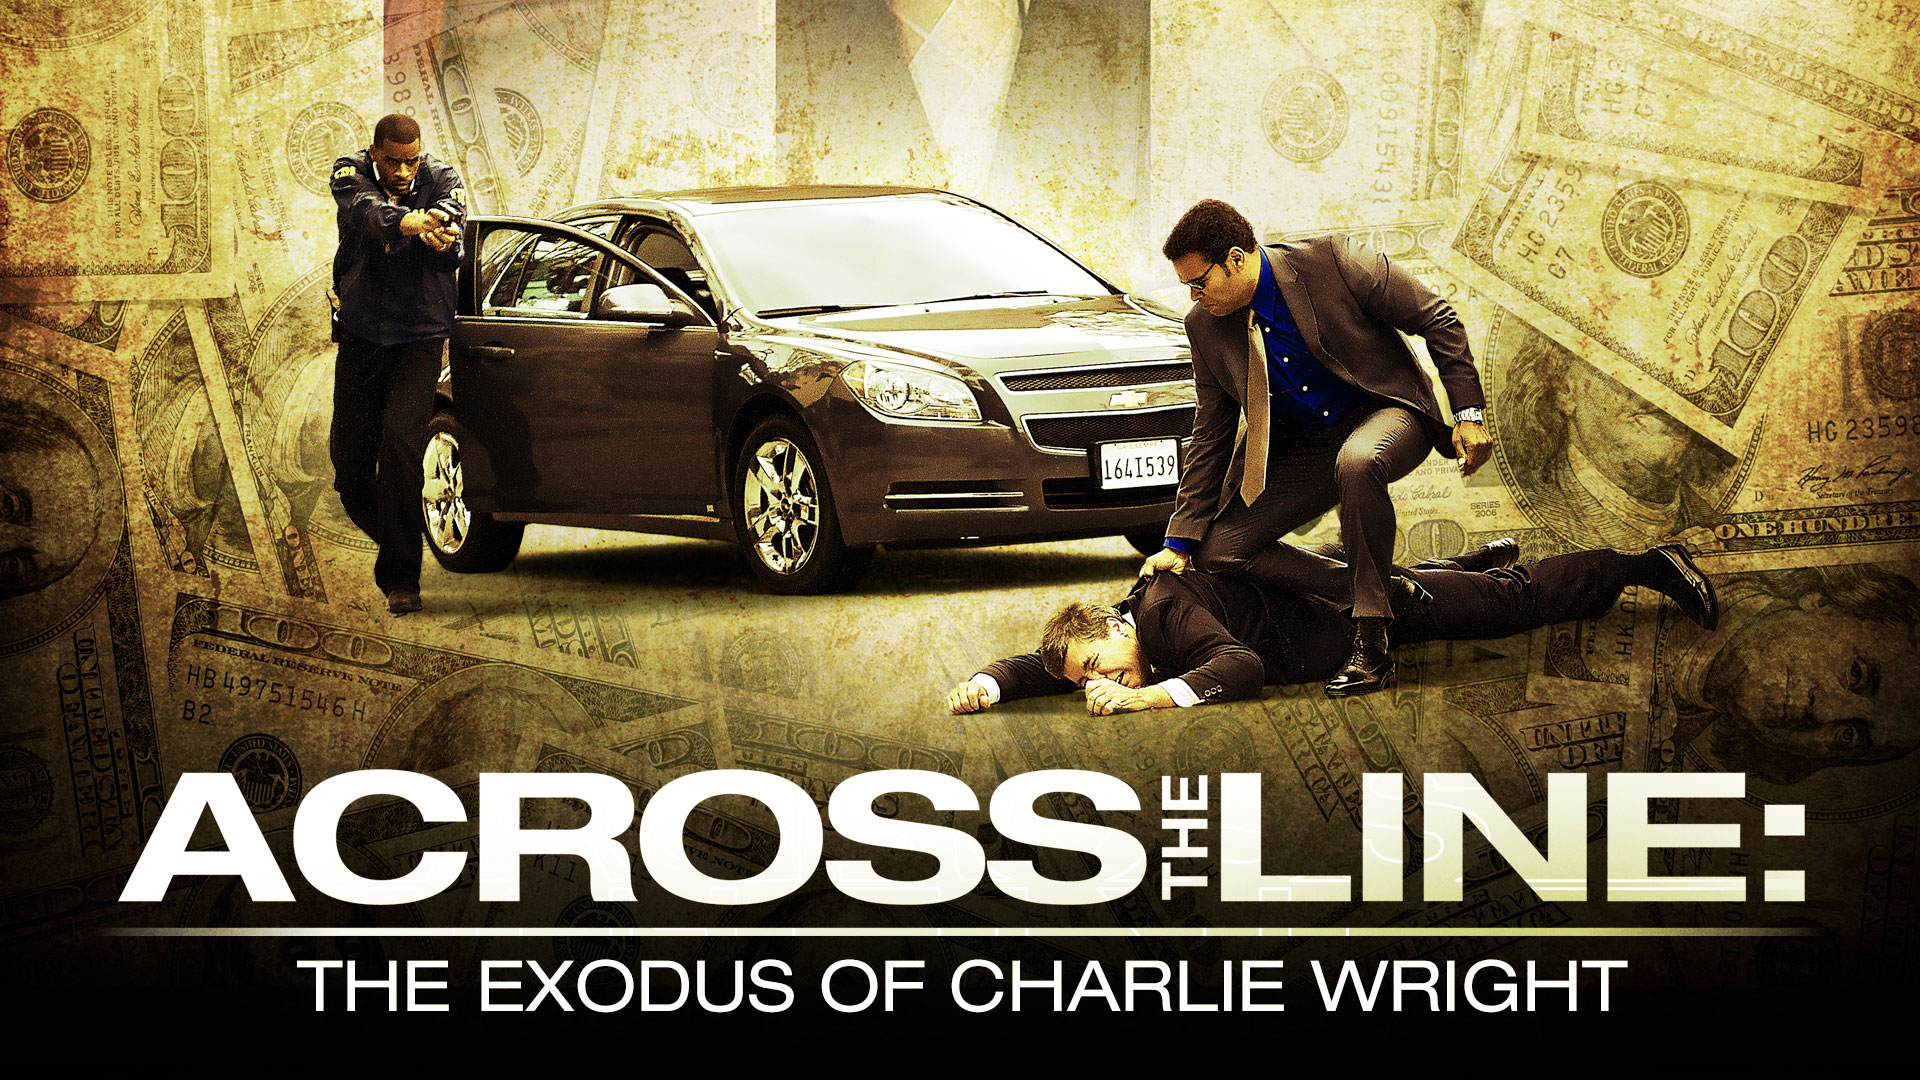 Across The Line: The Exodus of Charlie Wright